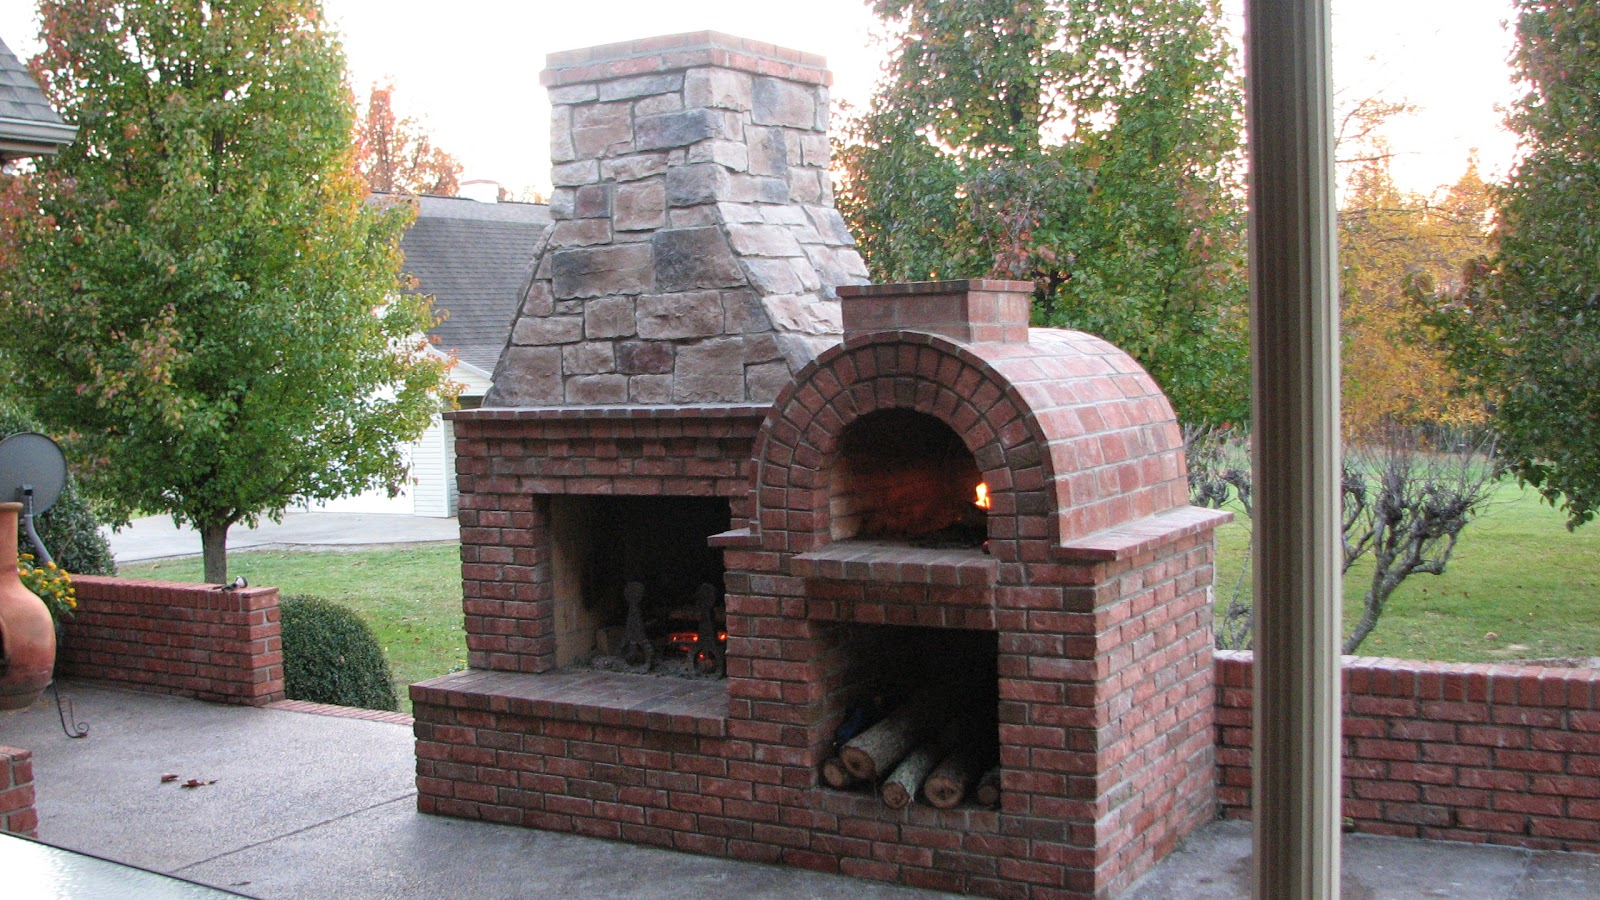 Build A Brick Oven Backyard Mycoffeepot Org